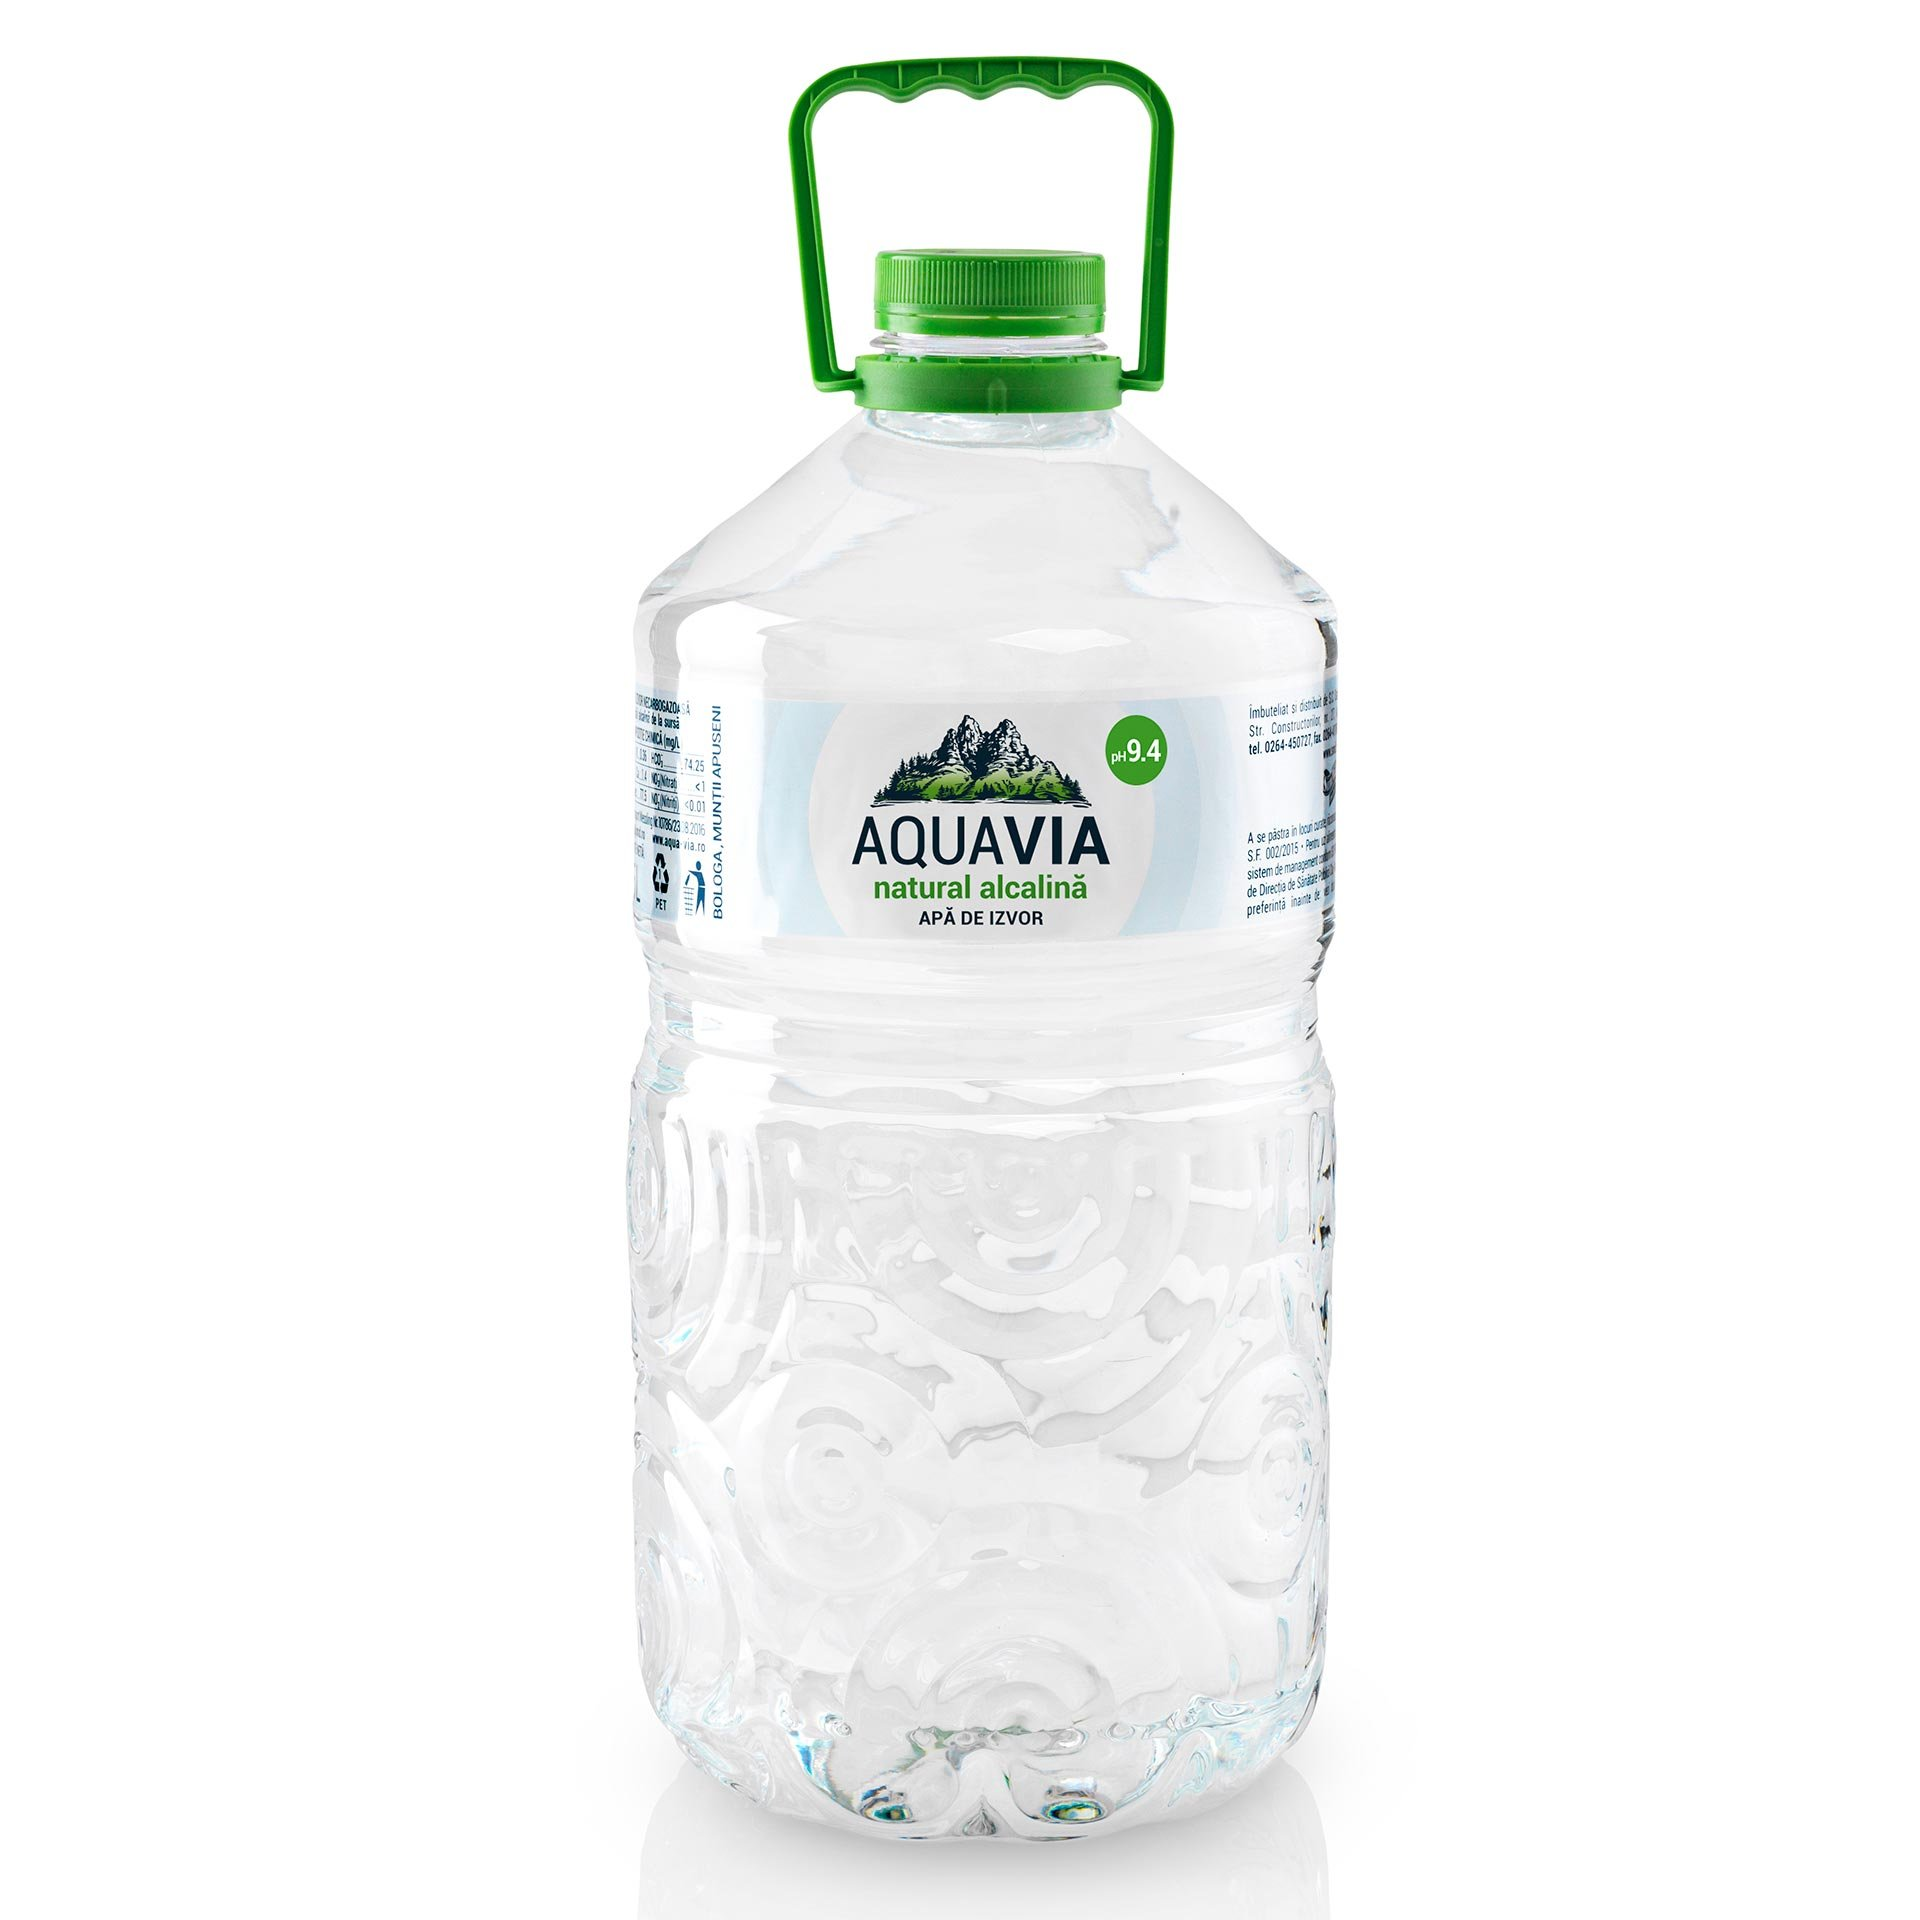 aquavia apa de izvor natural alcalina 9 4 ph 5l shopidoki